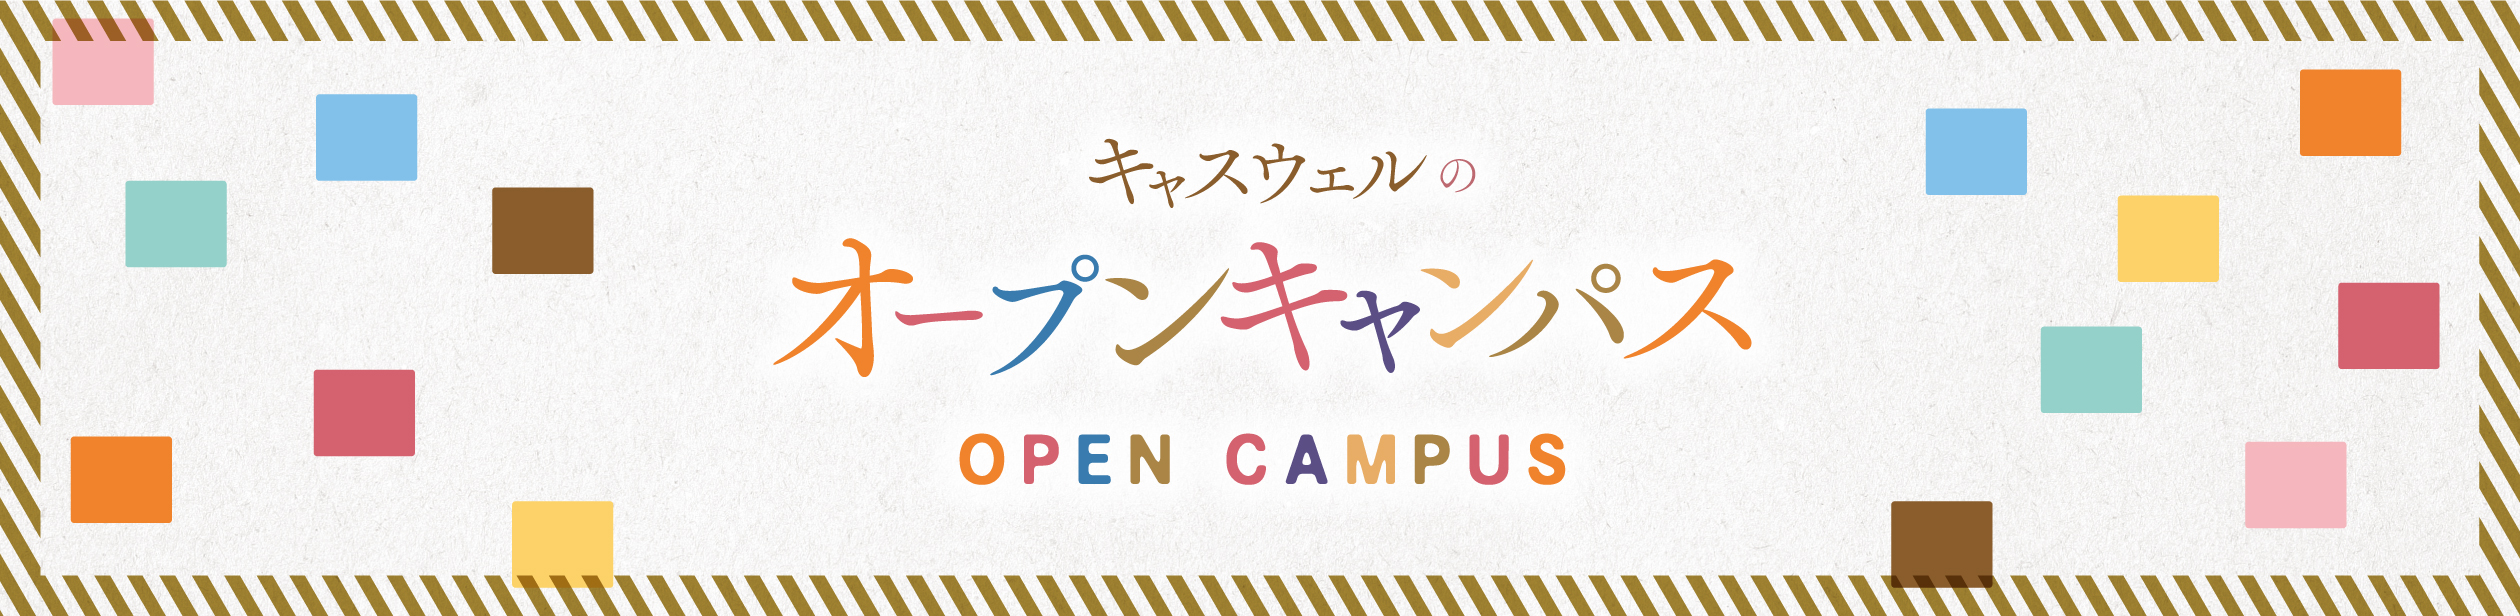 OPEN CAMPUS 冬のオープンキャンパス参加申し込み受付中!2018